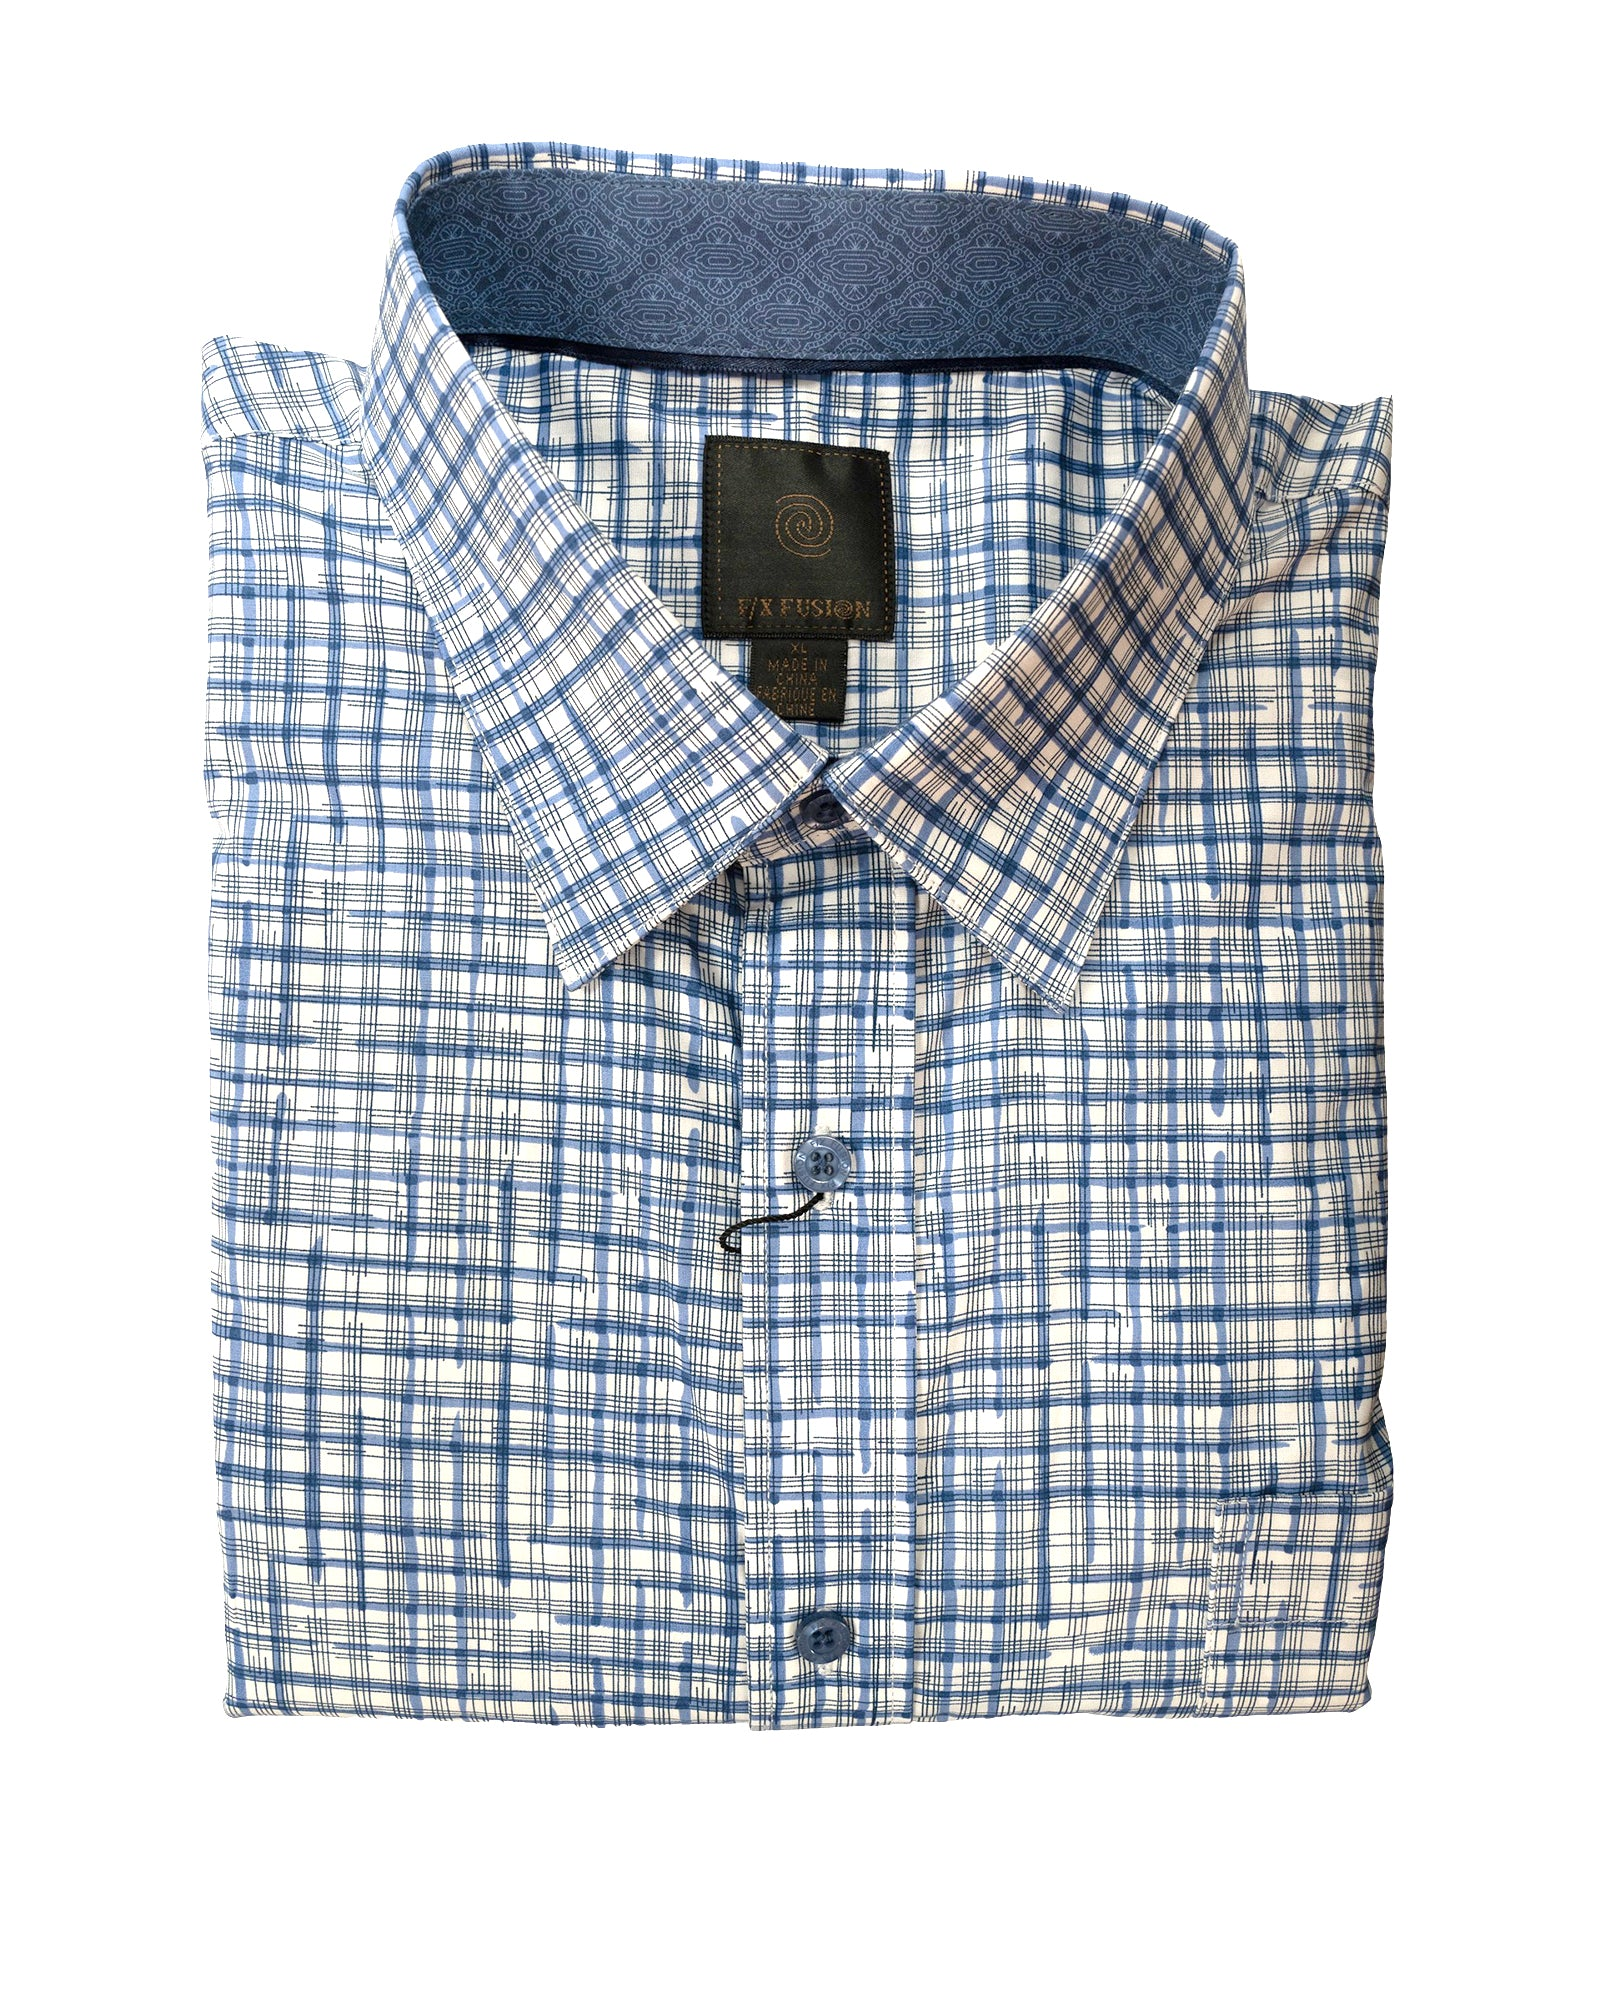 F/X Fusion Blue and White Grip Print Sport Shirt - Rainwater's Men's Clothing and Tuxedo Rental